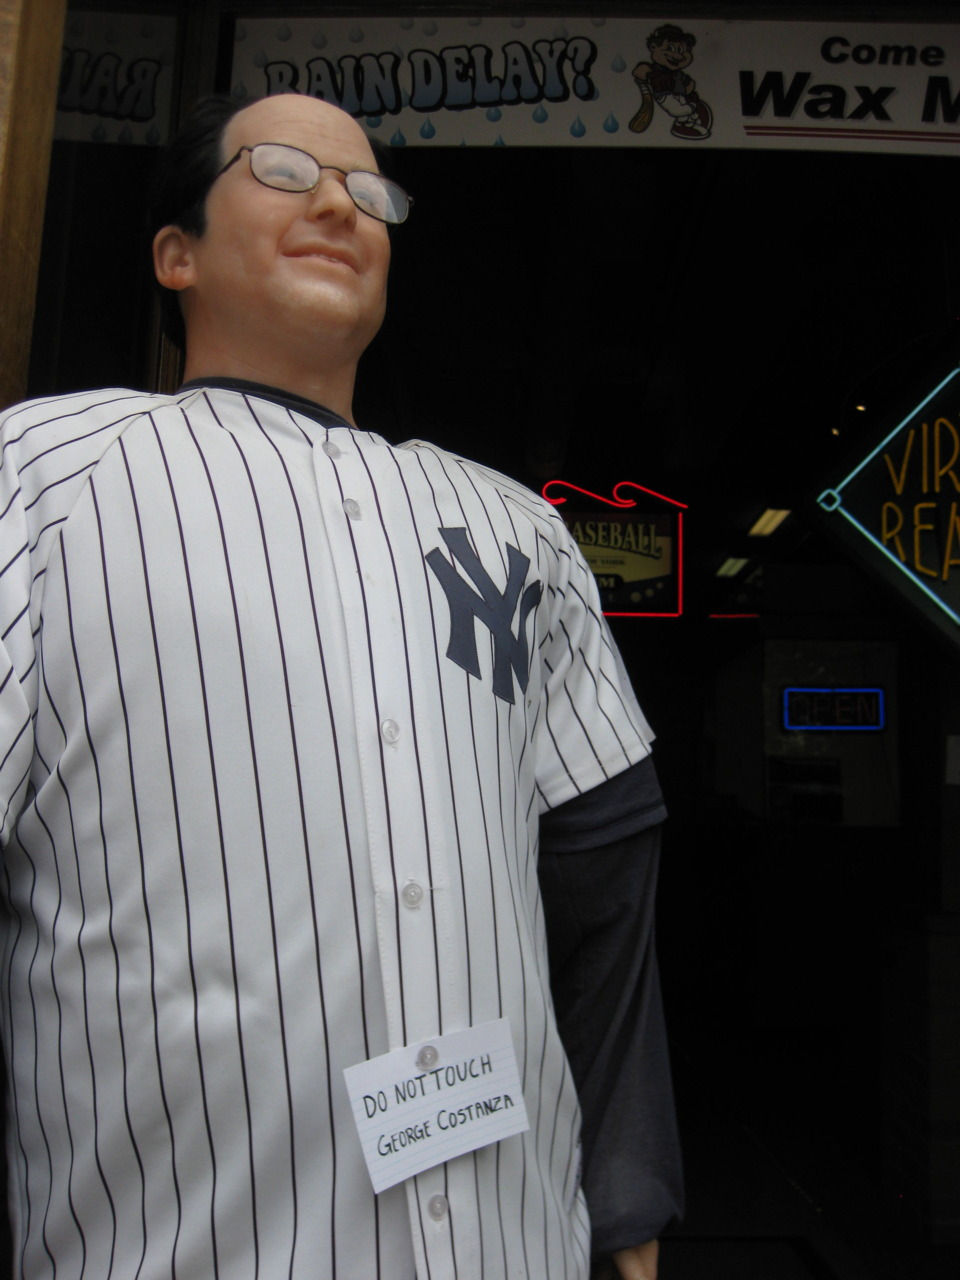 """Outside of the Heroes of Baseball Wax Museum, Cooperstown, NY. As a baseball agnostic from Massachusetts, this town was like a nightmare.   Stu put it very succinctly, when it comes to baseball fandom these days: """"It's like saying I'm a big fan of this corporation, headquartered here."""" When I wrote a bunch of articles for a Boston paper, often the subjects would try to endear themselves by talking about the Red Sox, which I… frankly, couldn't relate to much. And yet I still laughed at Marky Mark shooting Jeter in the leg in The Other Guys. Baseball + regional identity = so complex!"""